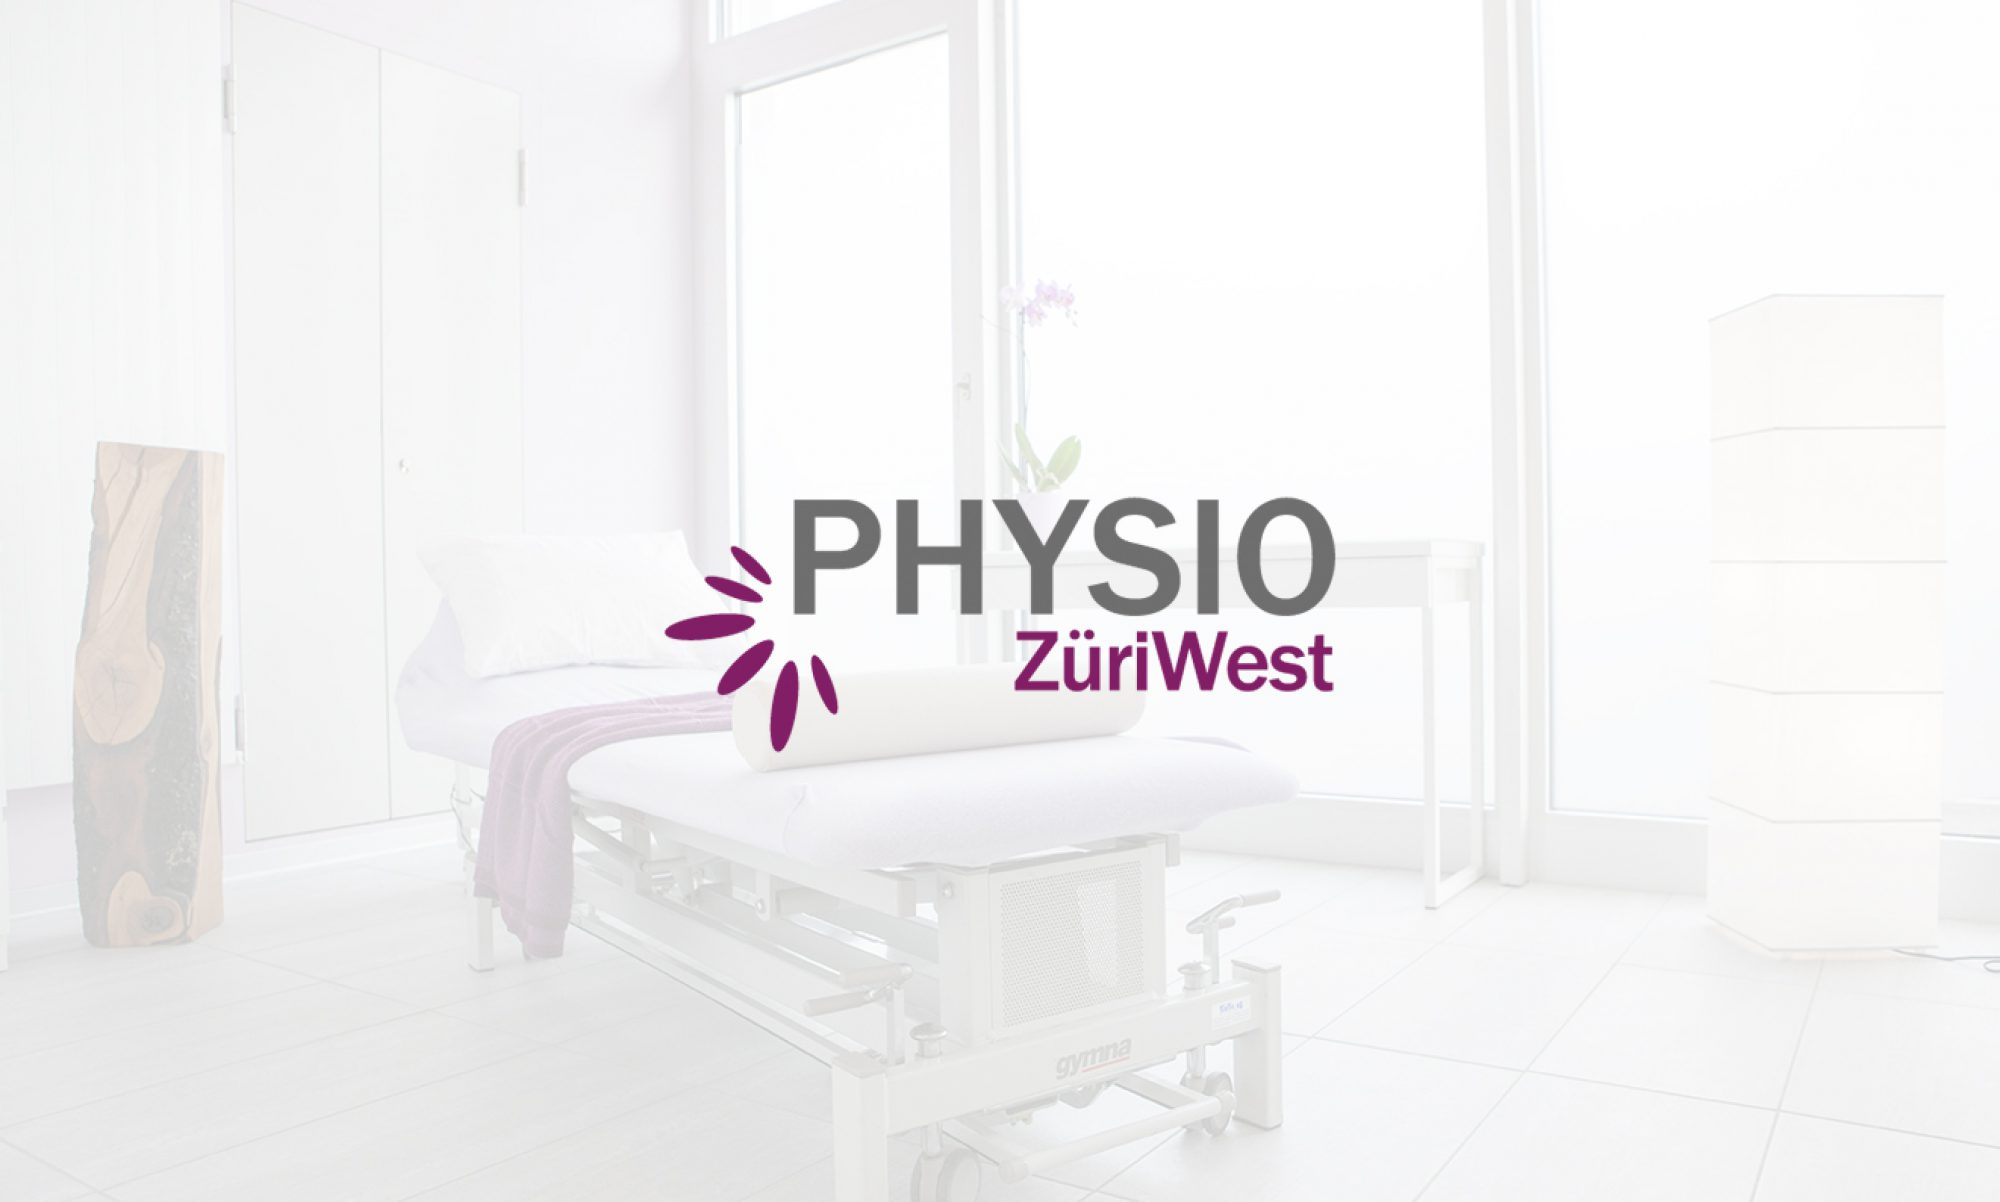 Physio Züri West